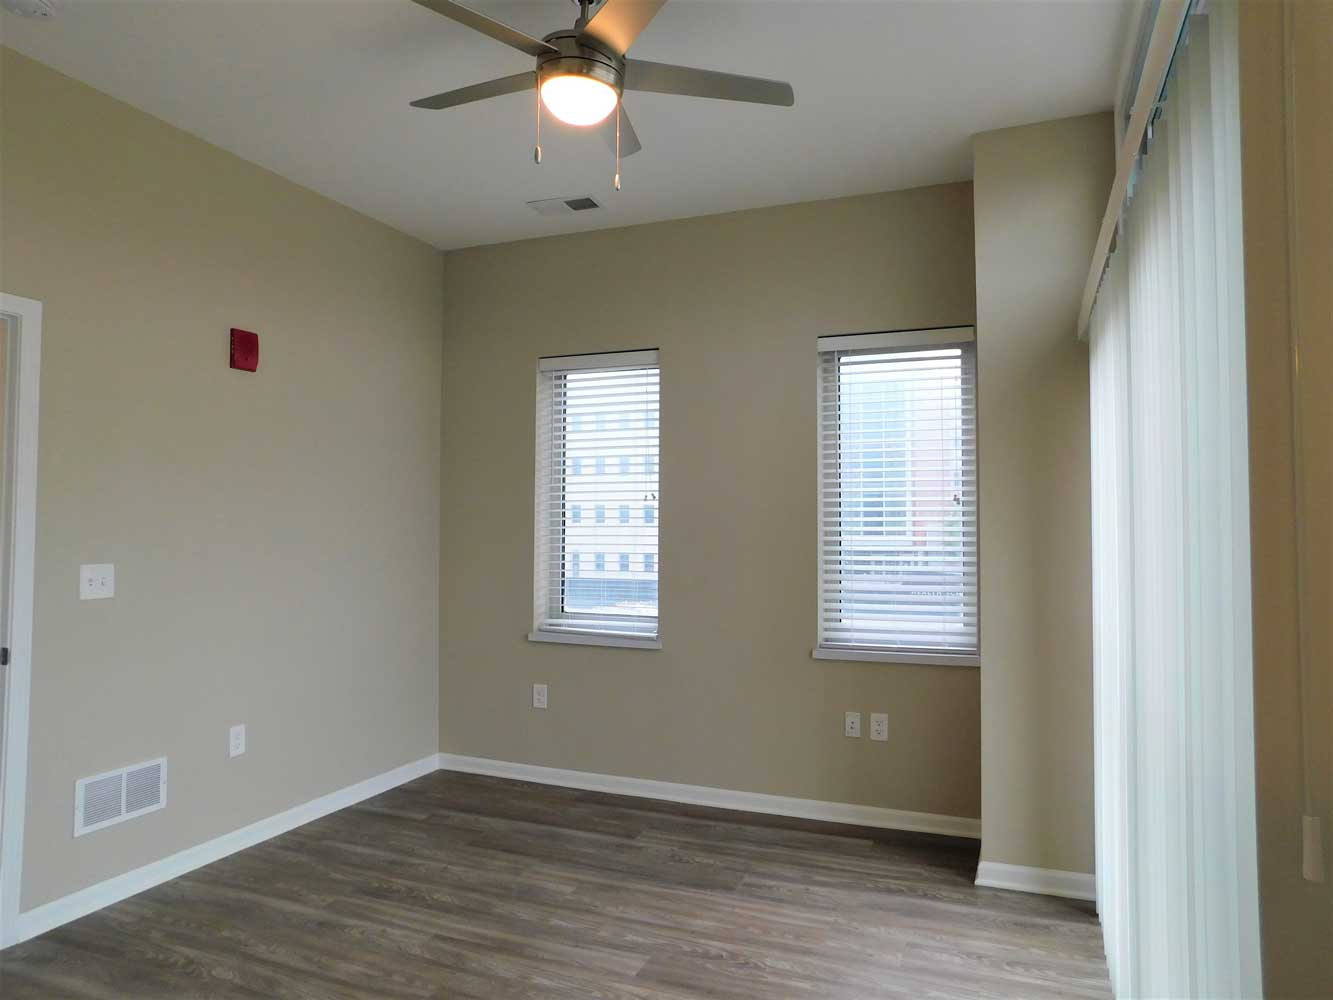 Ceiling Fans at Midtown Plaza Apartments in Kansas City, MO